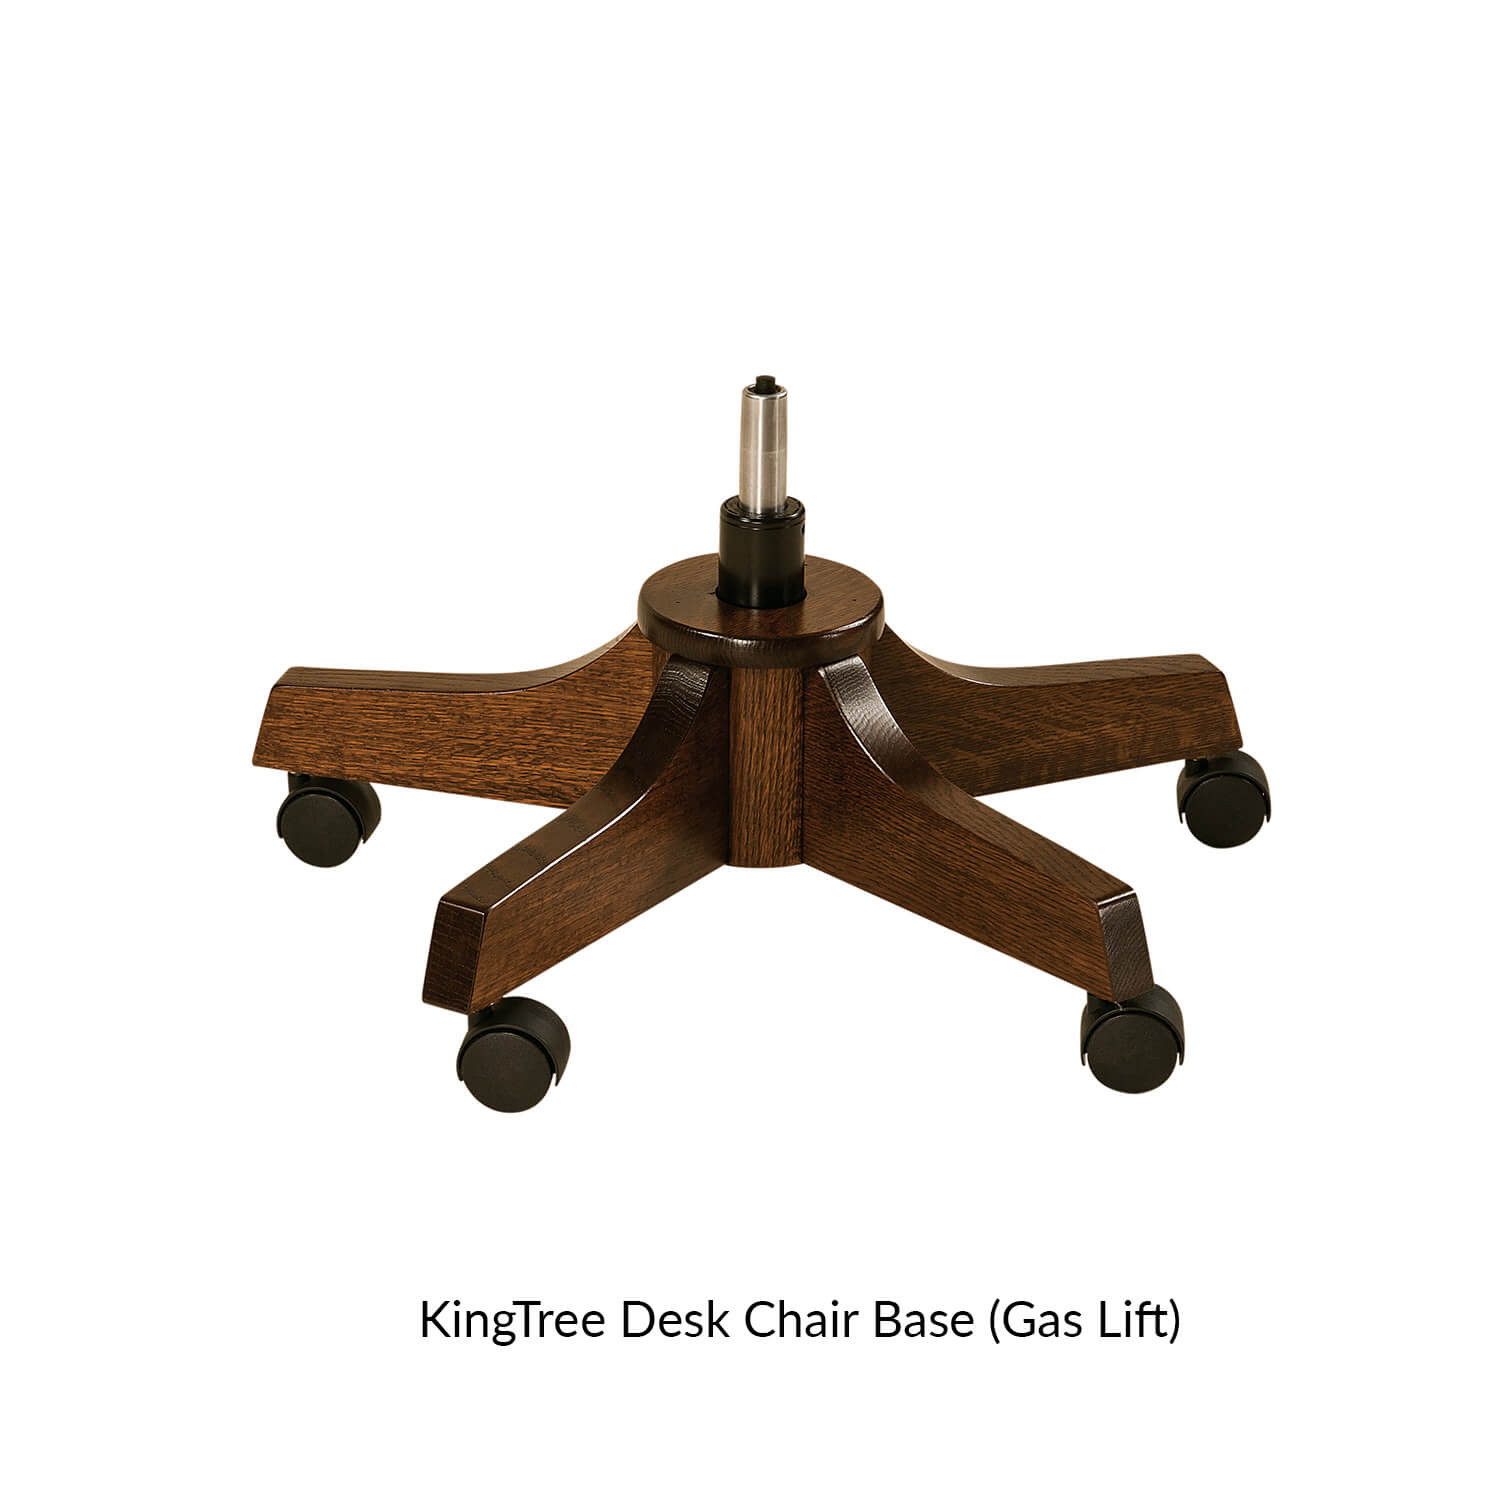 15.0-kingtree-desk-chair-base-gas-lift-.jpg